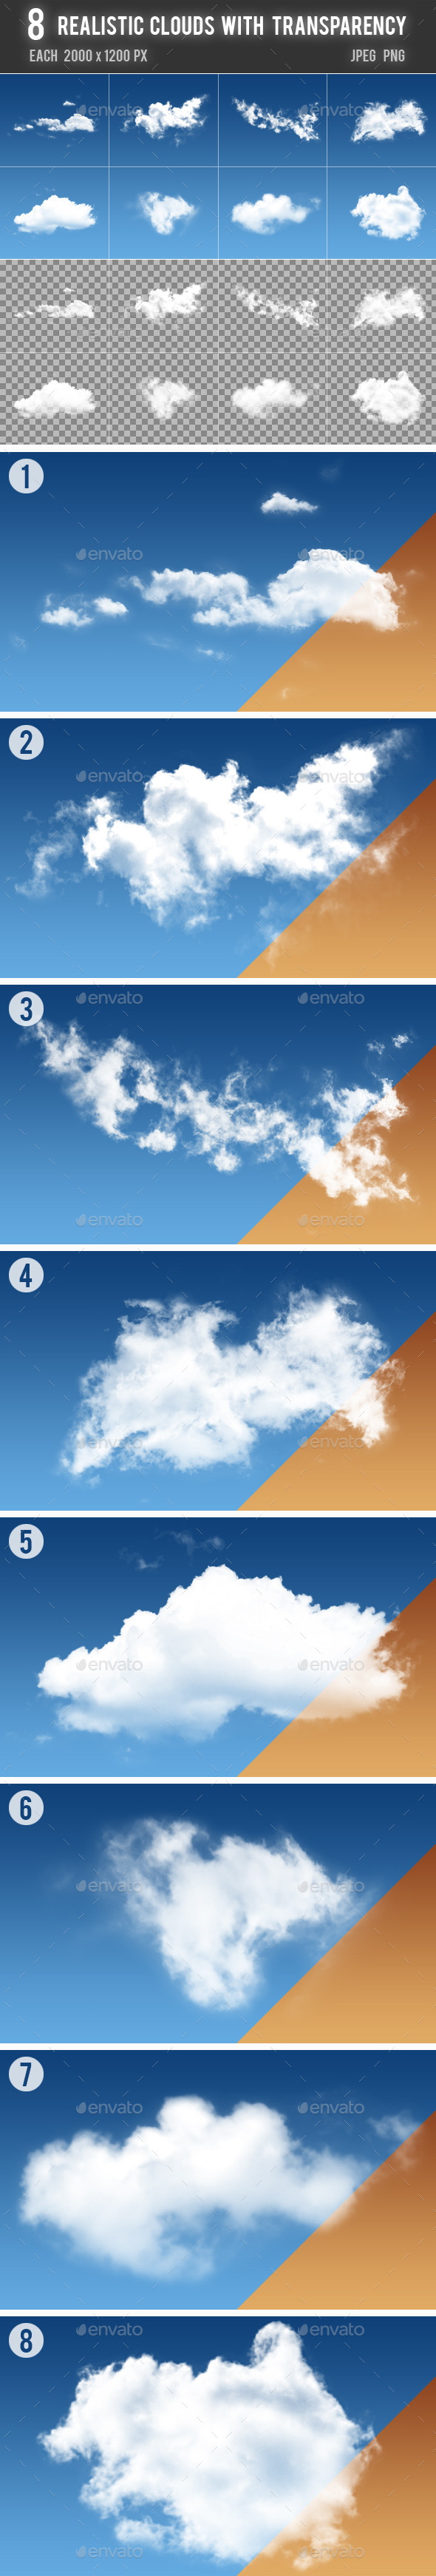 8 Realistic Clouds with Transparency - Nature Backgrounds